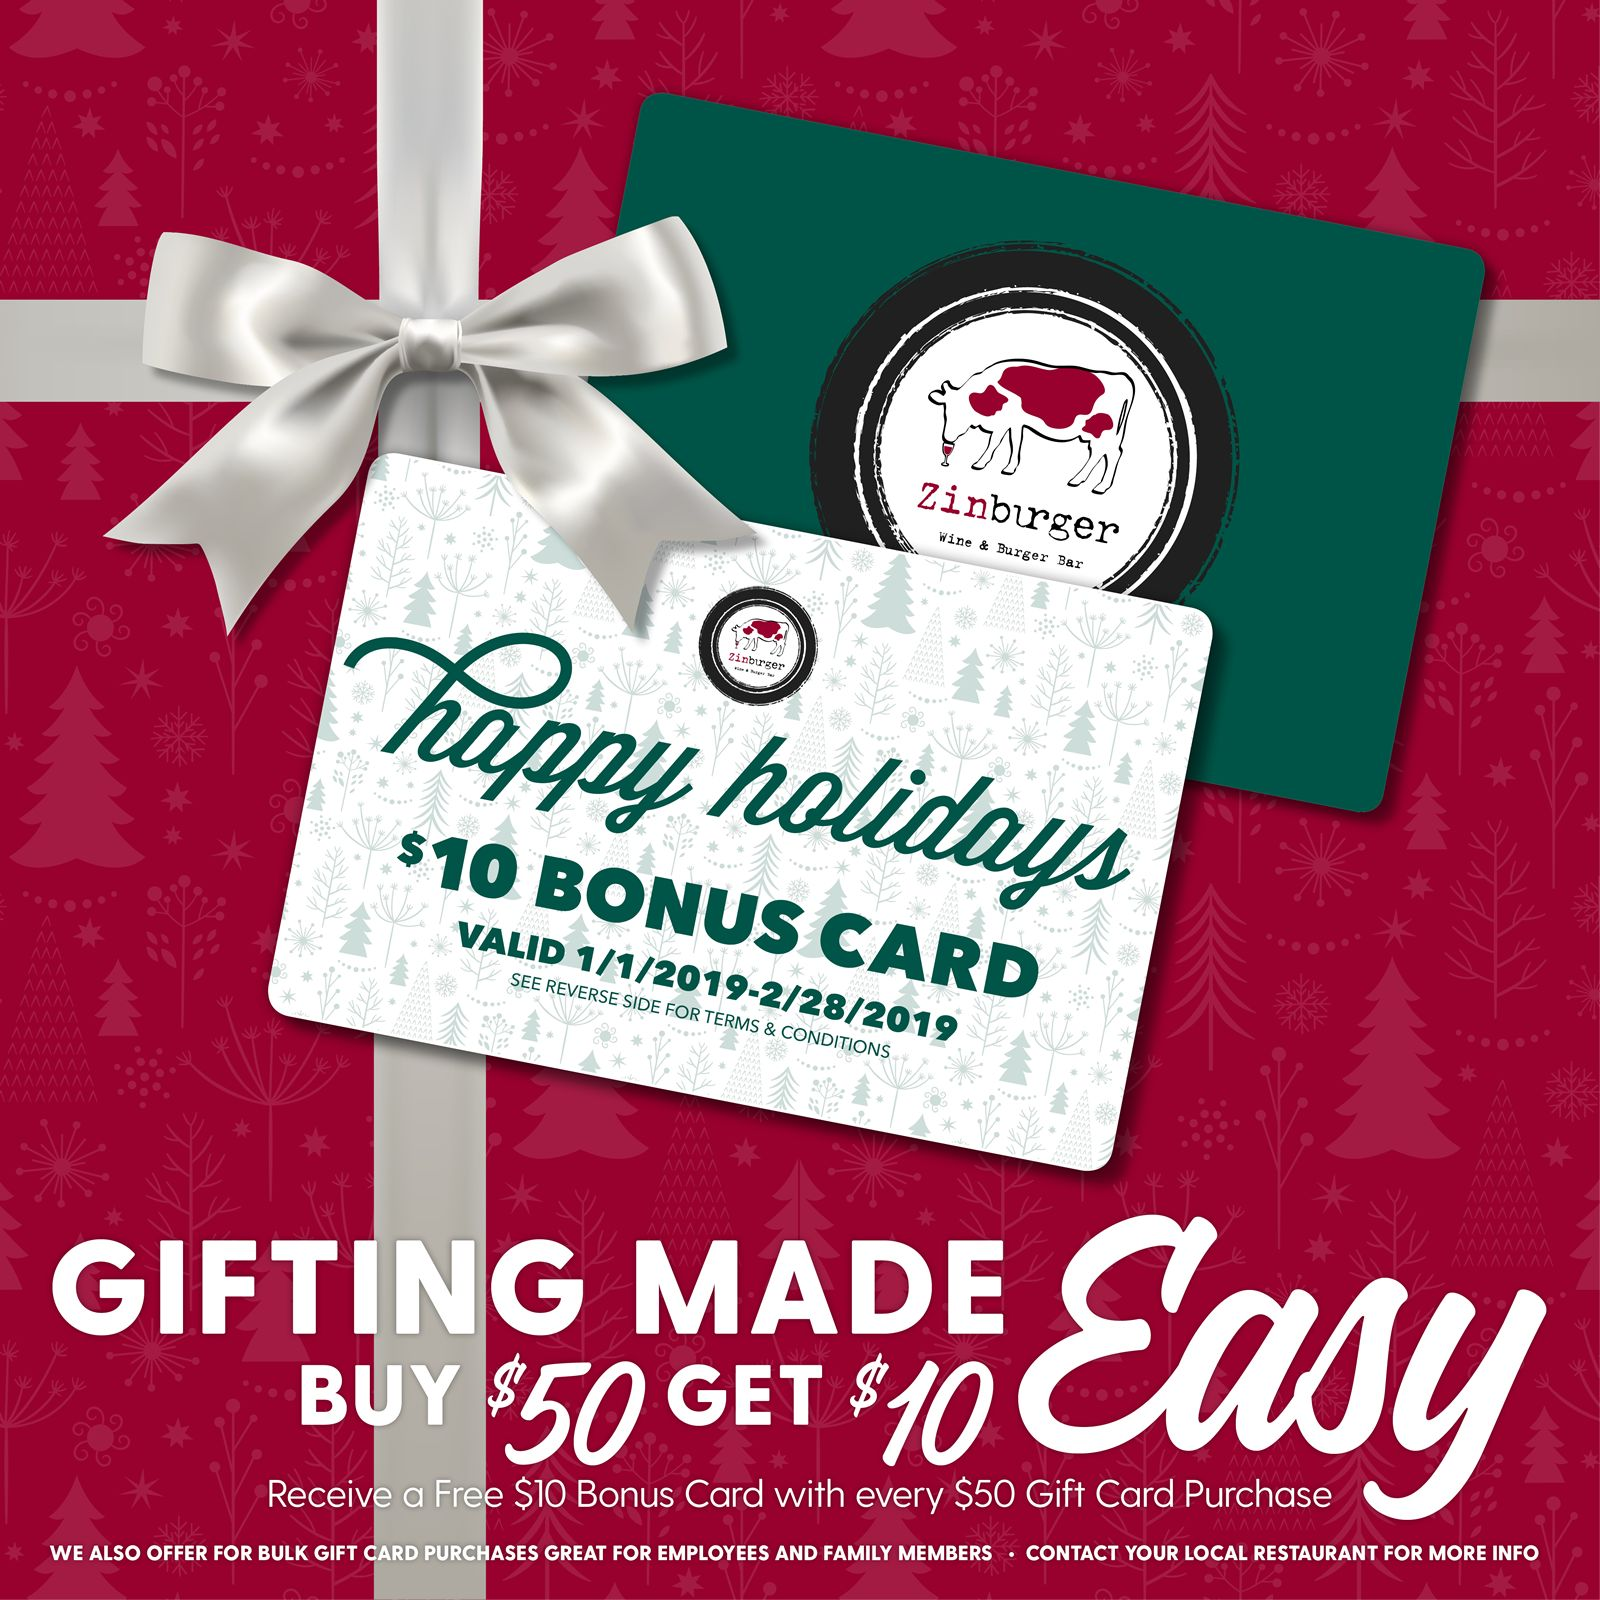 Zinburger Wine & Burger Bar Holiday Gift Card Promotion: Free $10 Bonus Card with $50 Gift Card Purchase